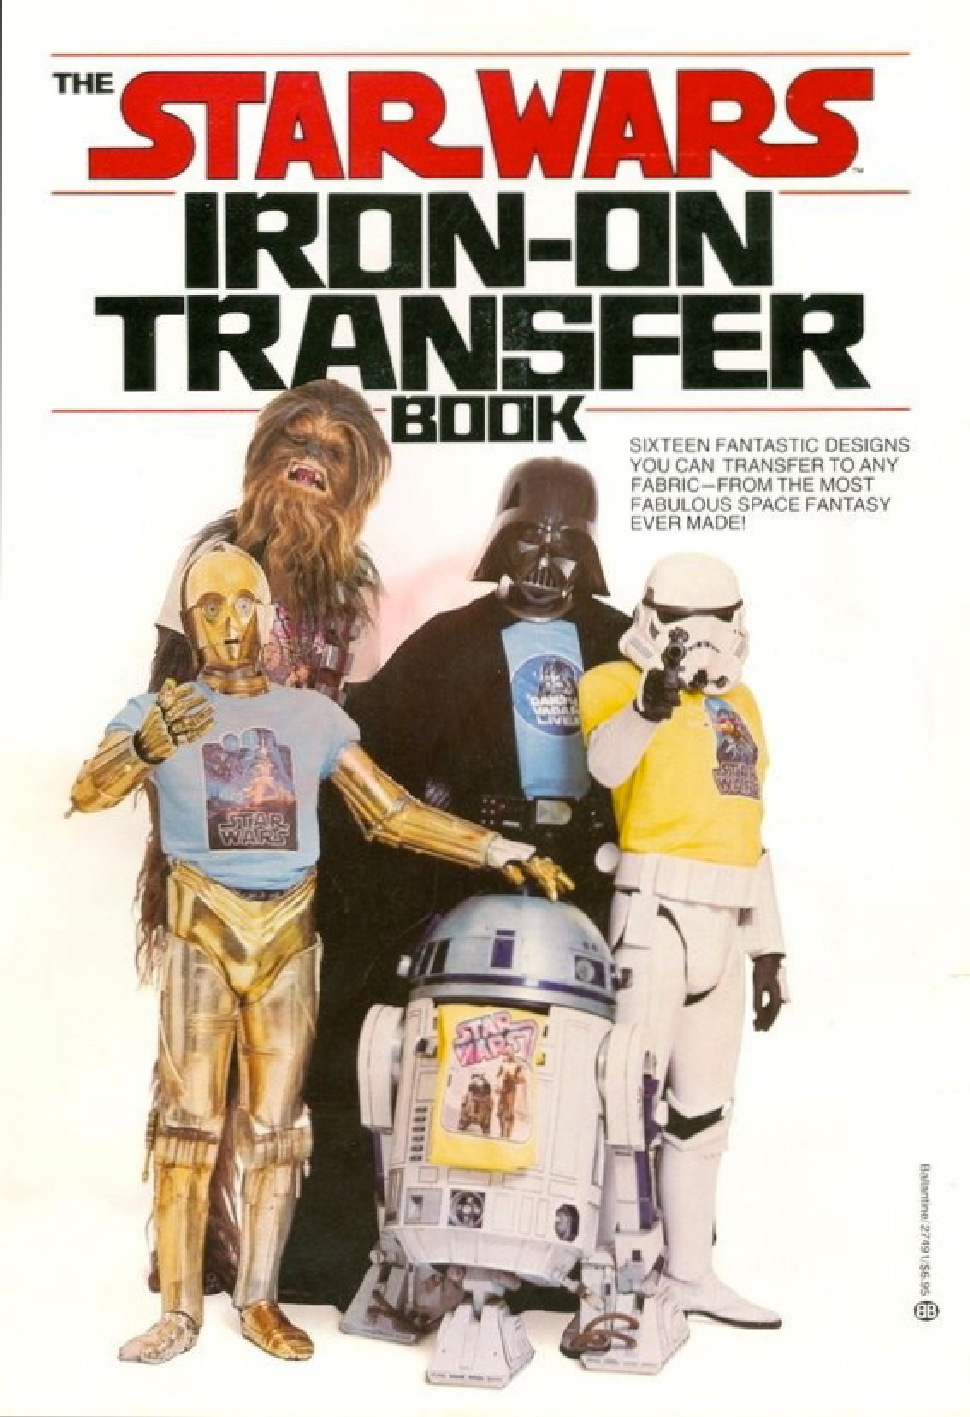 The Star Wars Iron-on Transfer Book